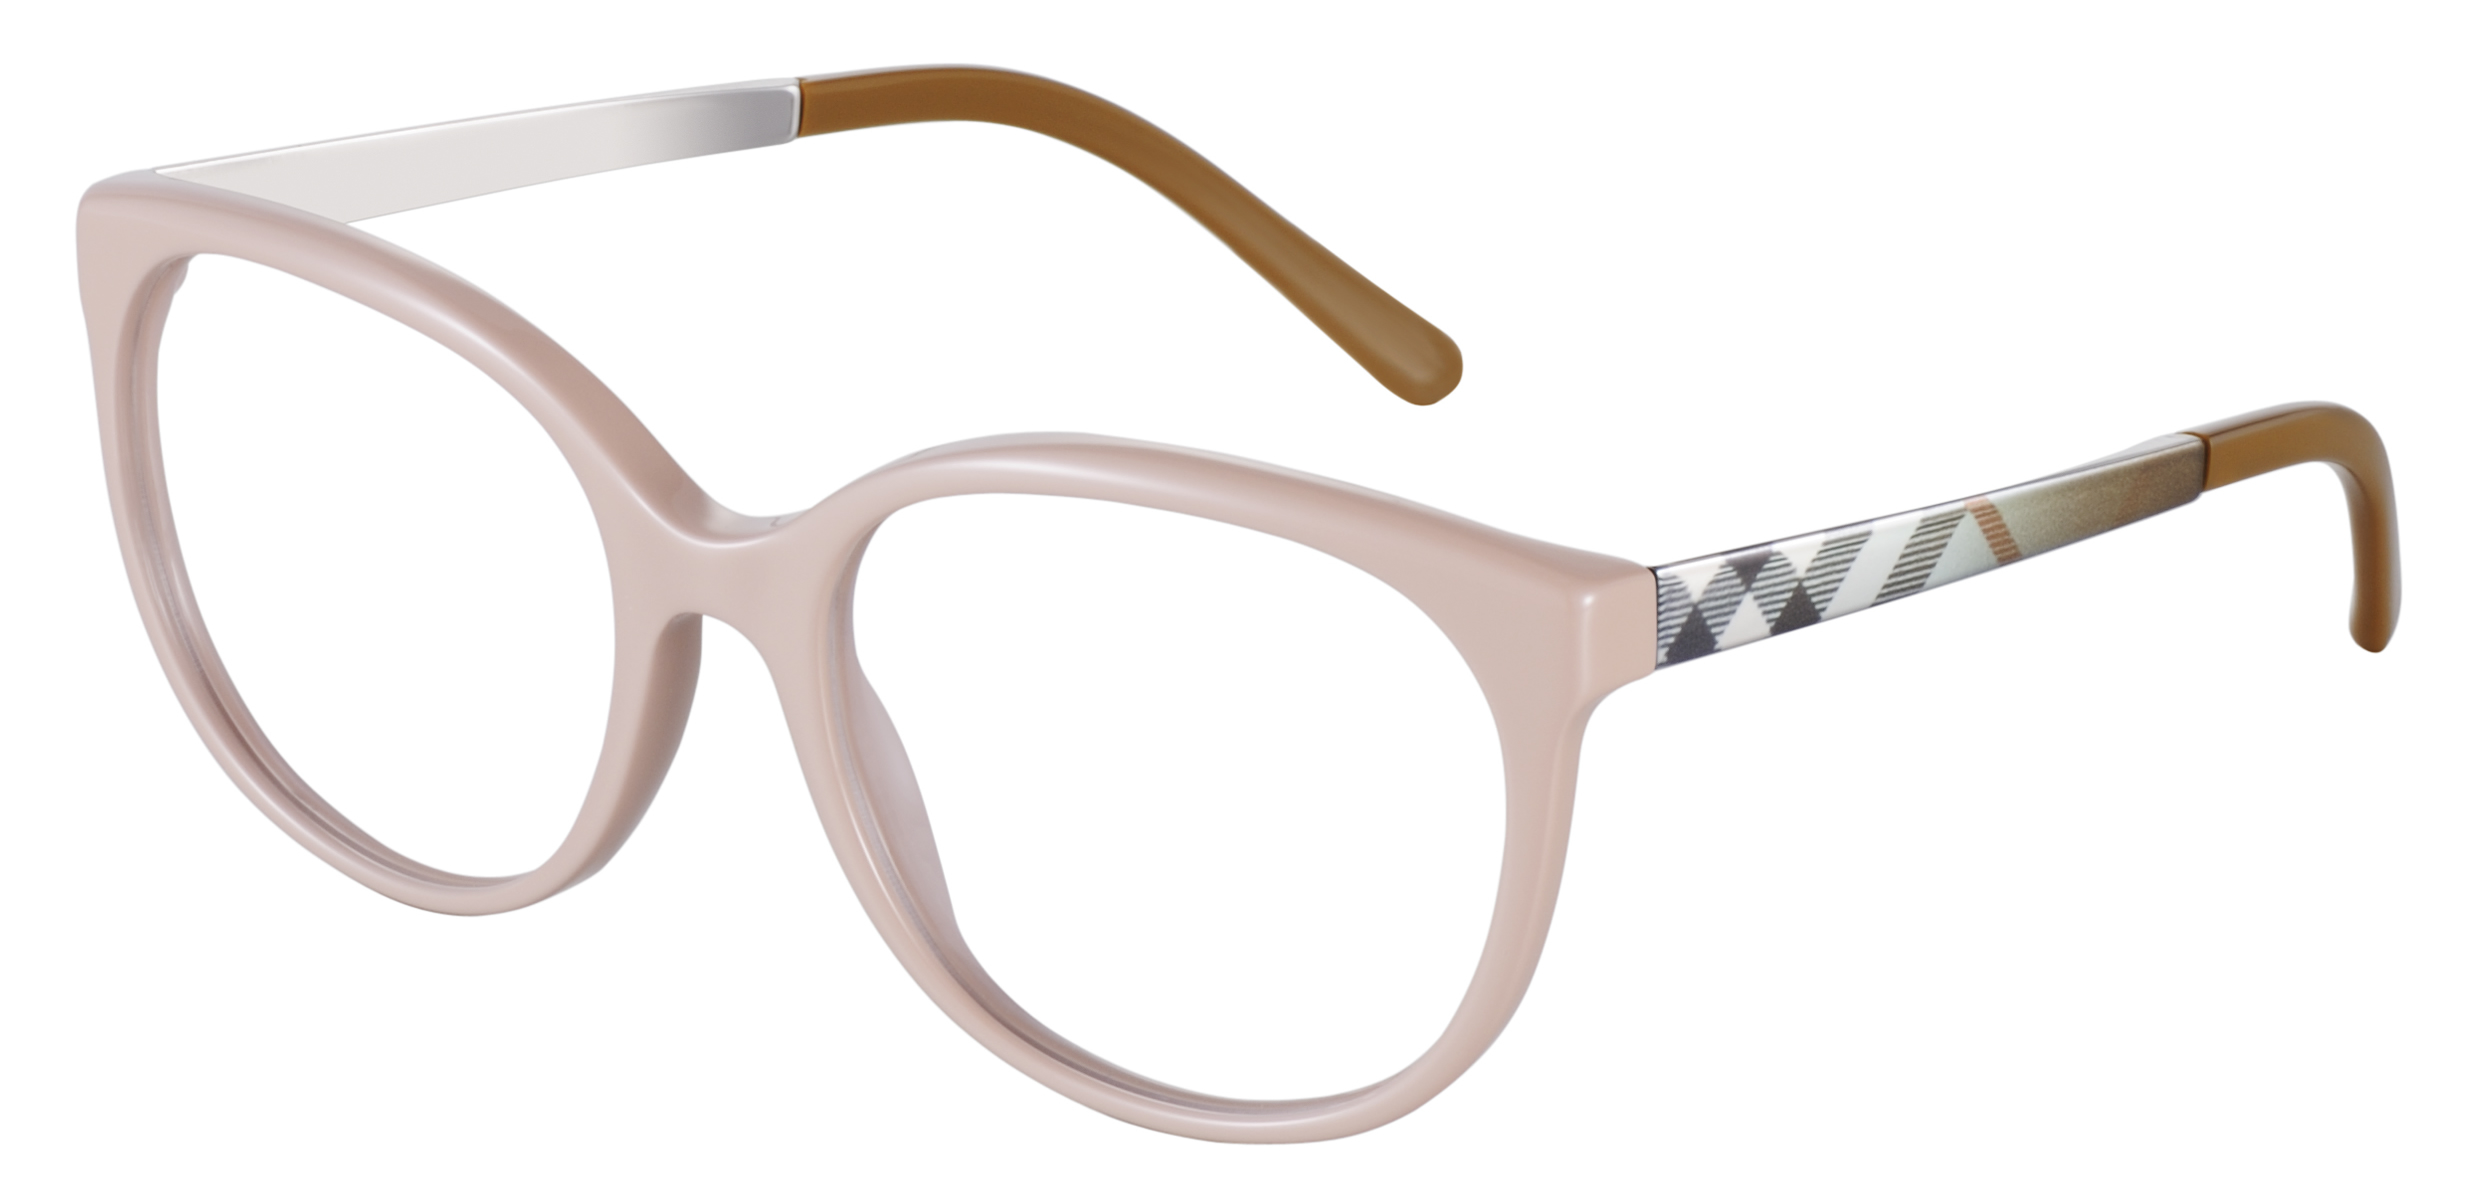 e4626a46f51c Burberry Spark Eyewear launched for men and women -